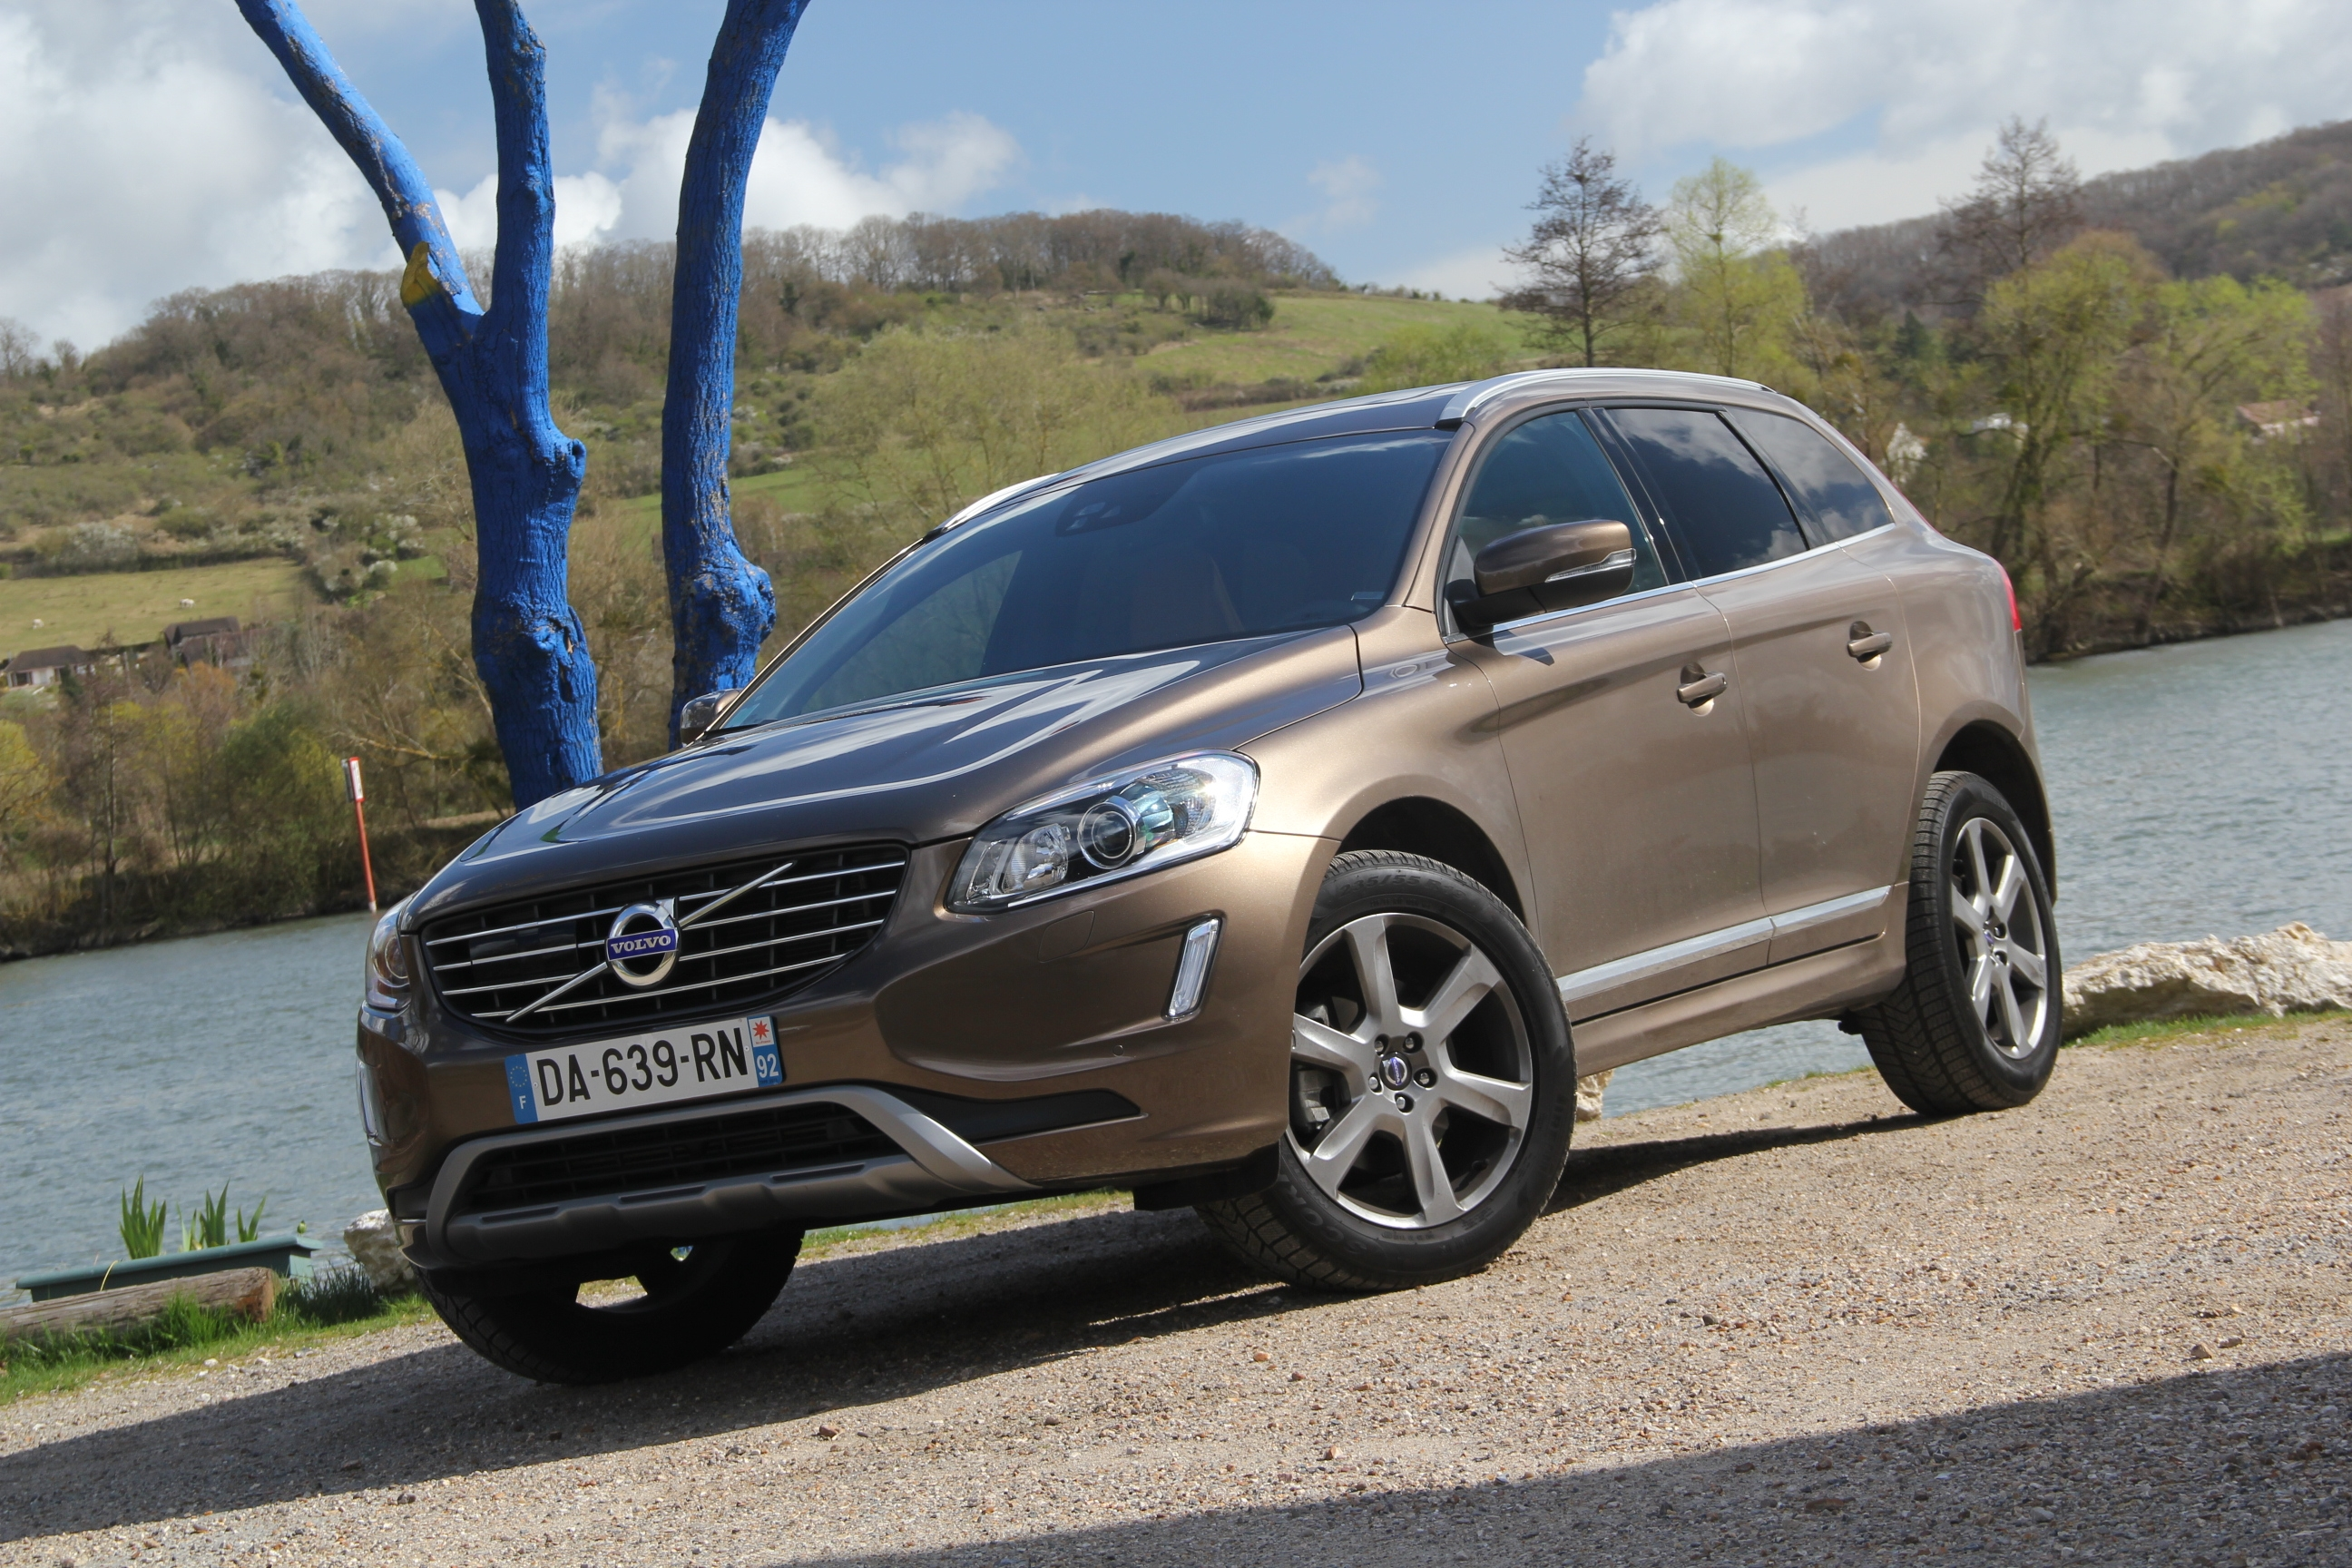 essai volvo xc60 restyl la voiture zlatan. Black Bedroom Furniture Sets. Home Design Ideas